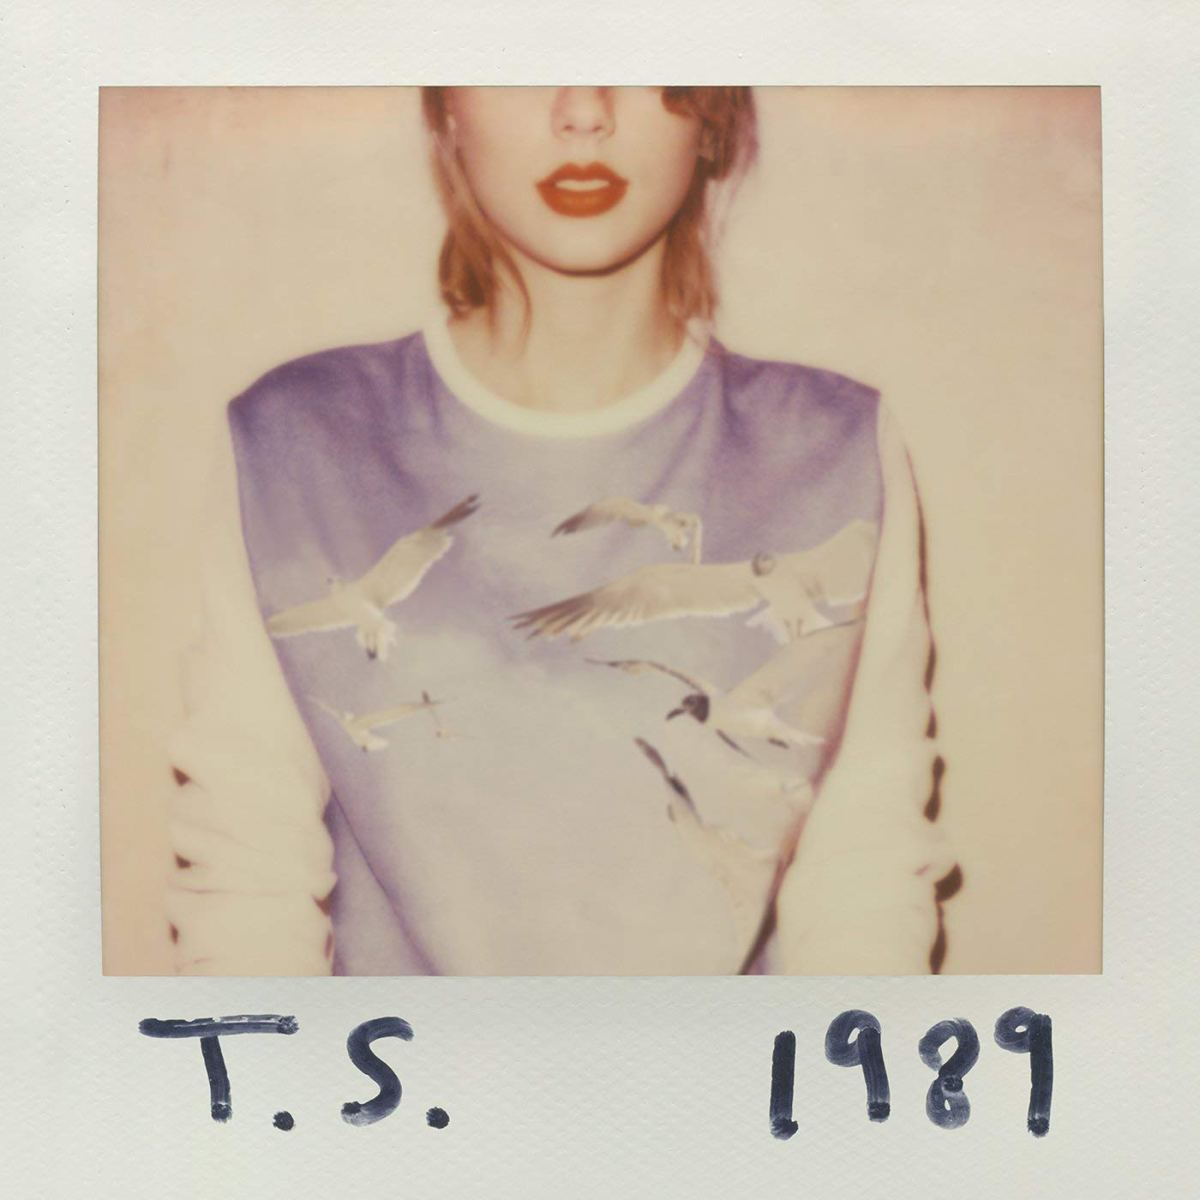 '1989' is Taylor Swift's Third Album with 10 or More RIAA Certified Tracks